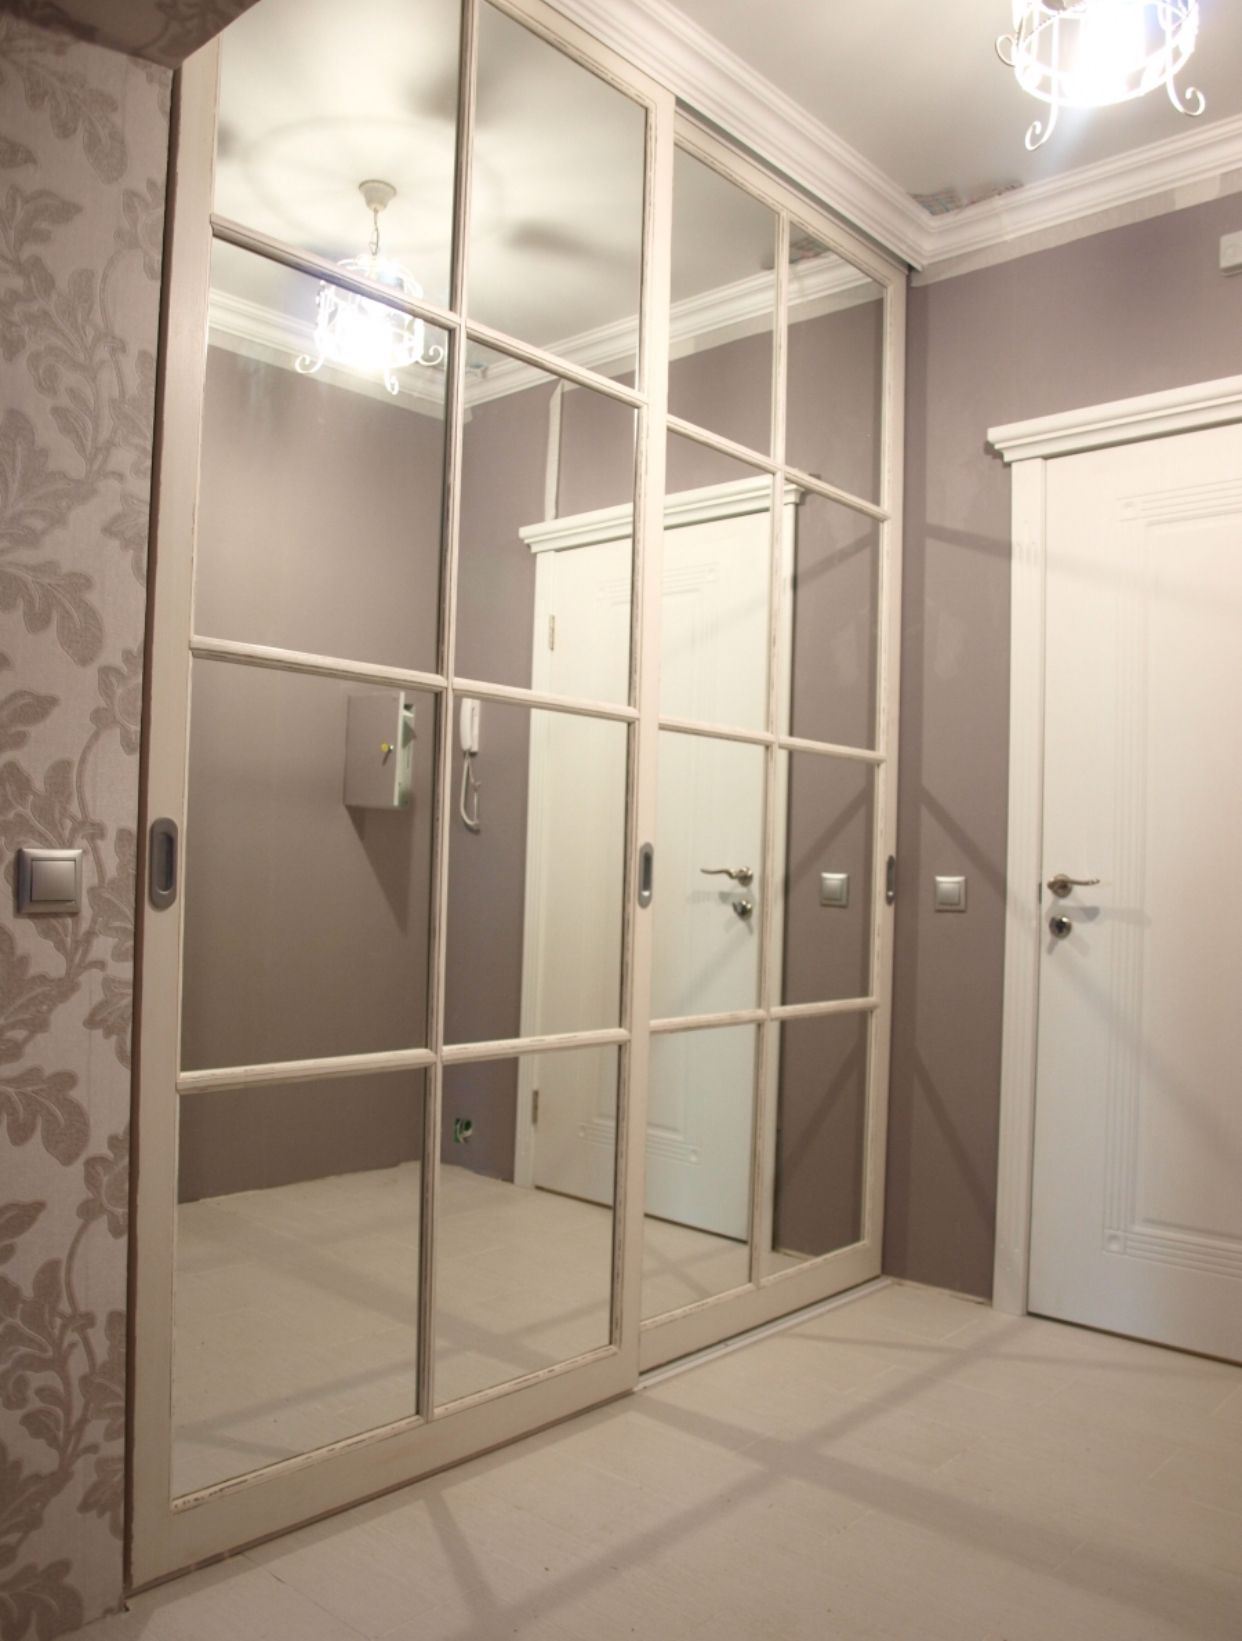 Hallway trim ideas  Mirrored closet doors makeover It can be done by adding popin